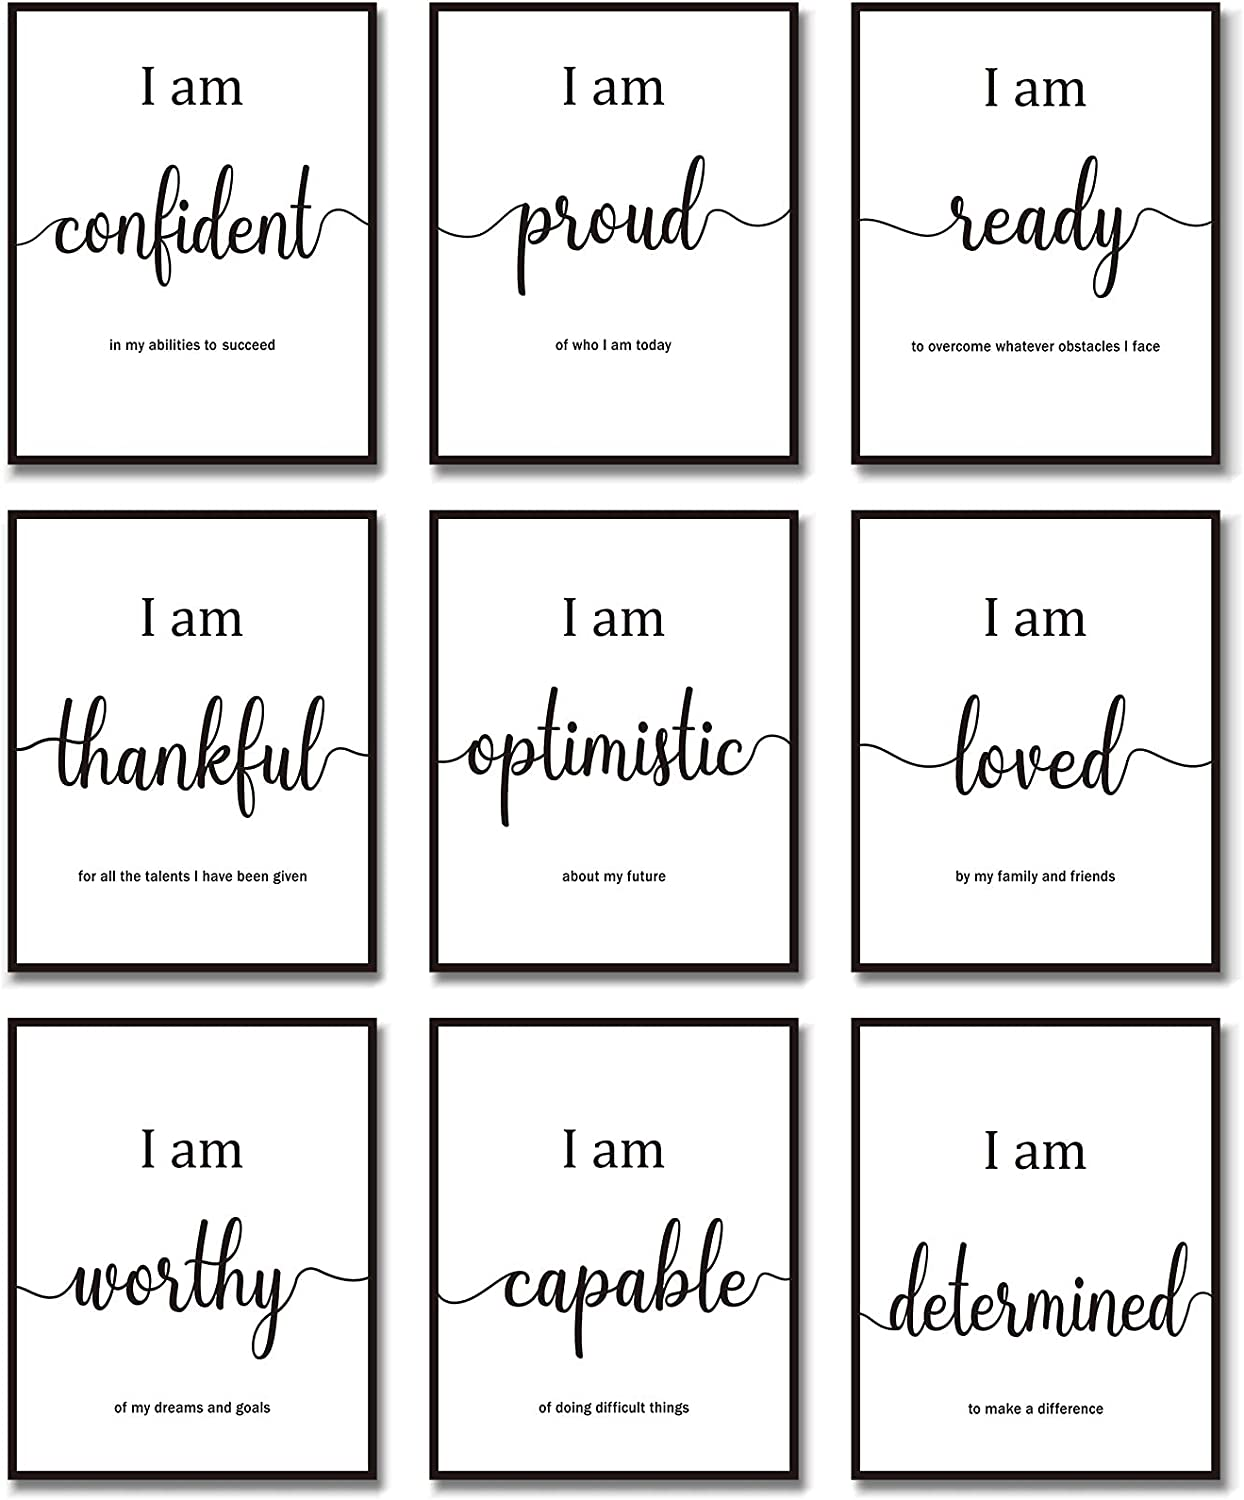 9 Pieces Inspirational Motivational Wall Art Office Bedroom Wall Art, Daily Positive Affirmations for Men Women Kids Inspirational Posters Inspirational Positive Quotes Sayings Wall Decor (White)